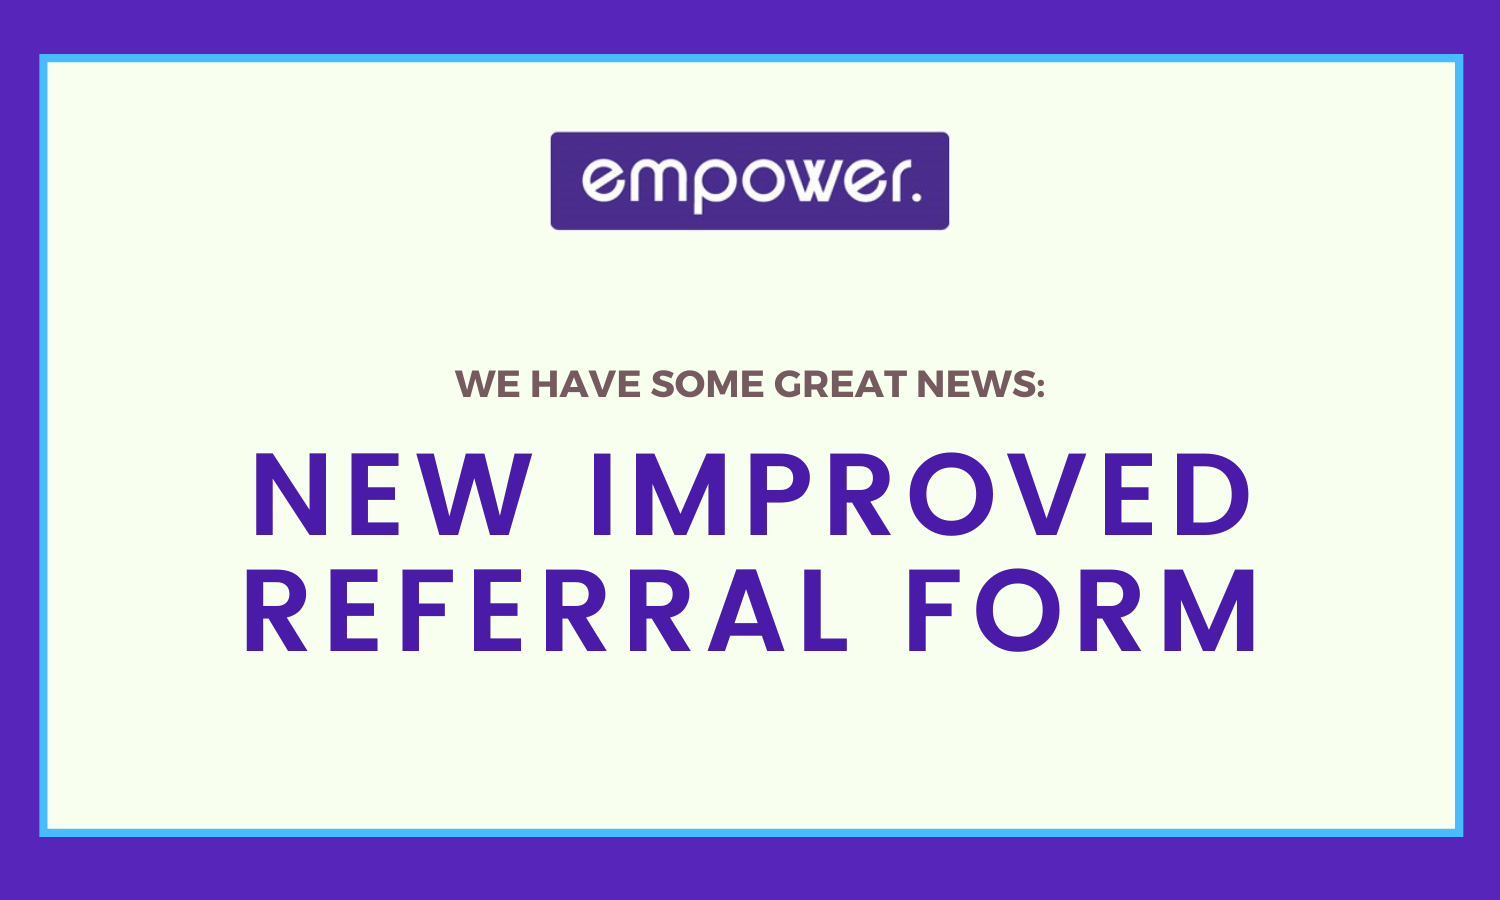 Empower improves customer experience with new referral form